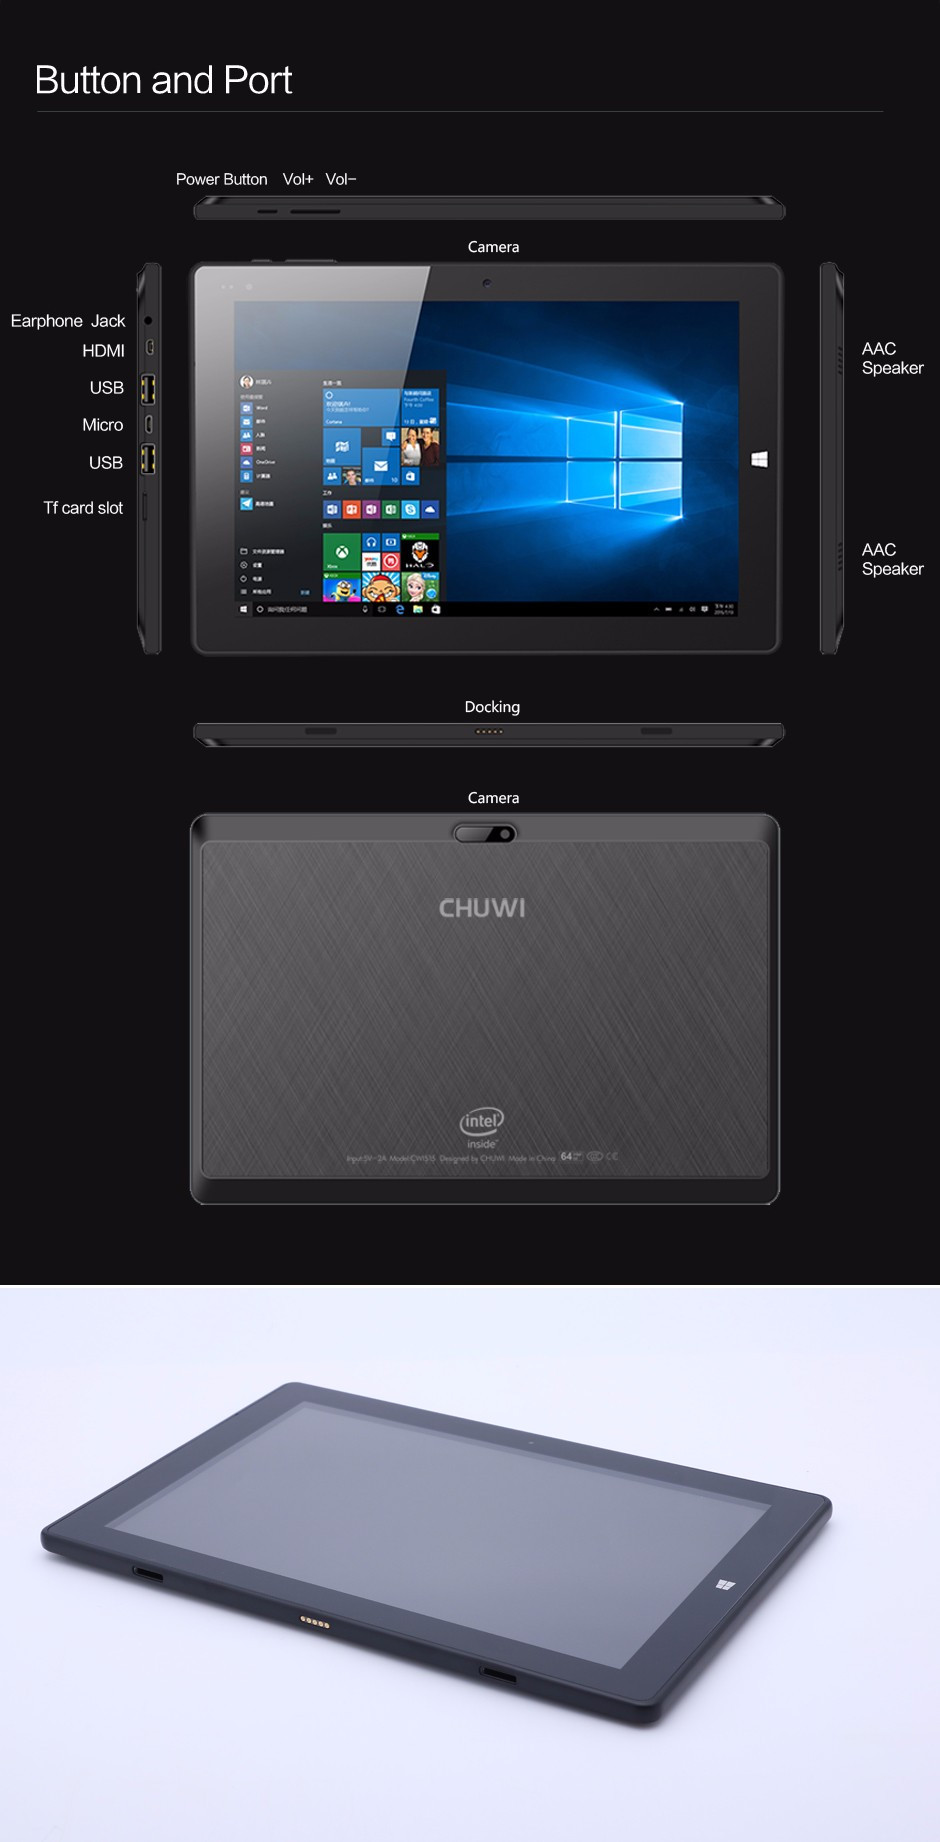 CHUWI HI10 WINDOWS 10 TABLET PC INTEL ATOM CHERRY TRAIL Z8300 9